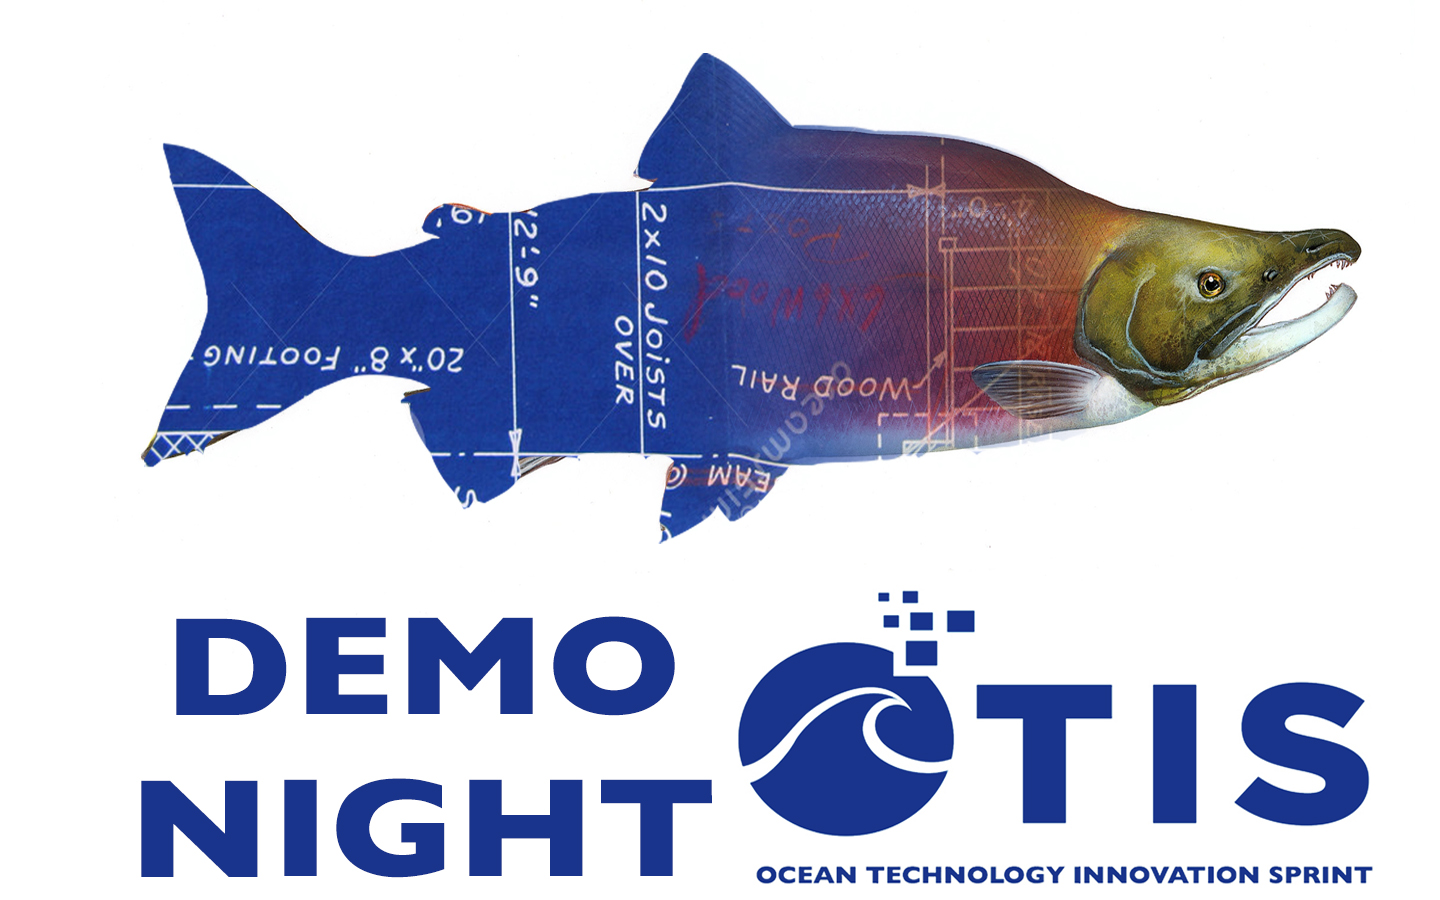 OTIS Demo Night Event Header: Image of a Salmon. The tail is a blueprint, as if it was being drawn. OTIS logo and Demo Night